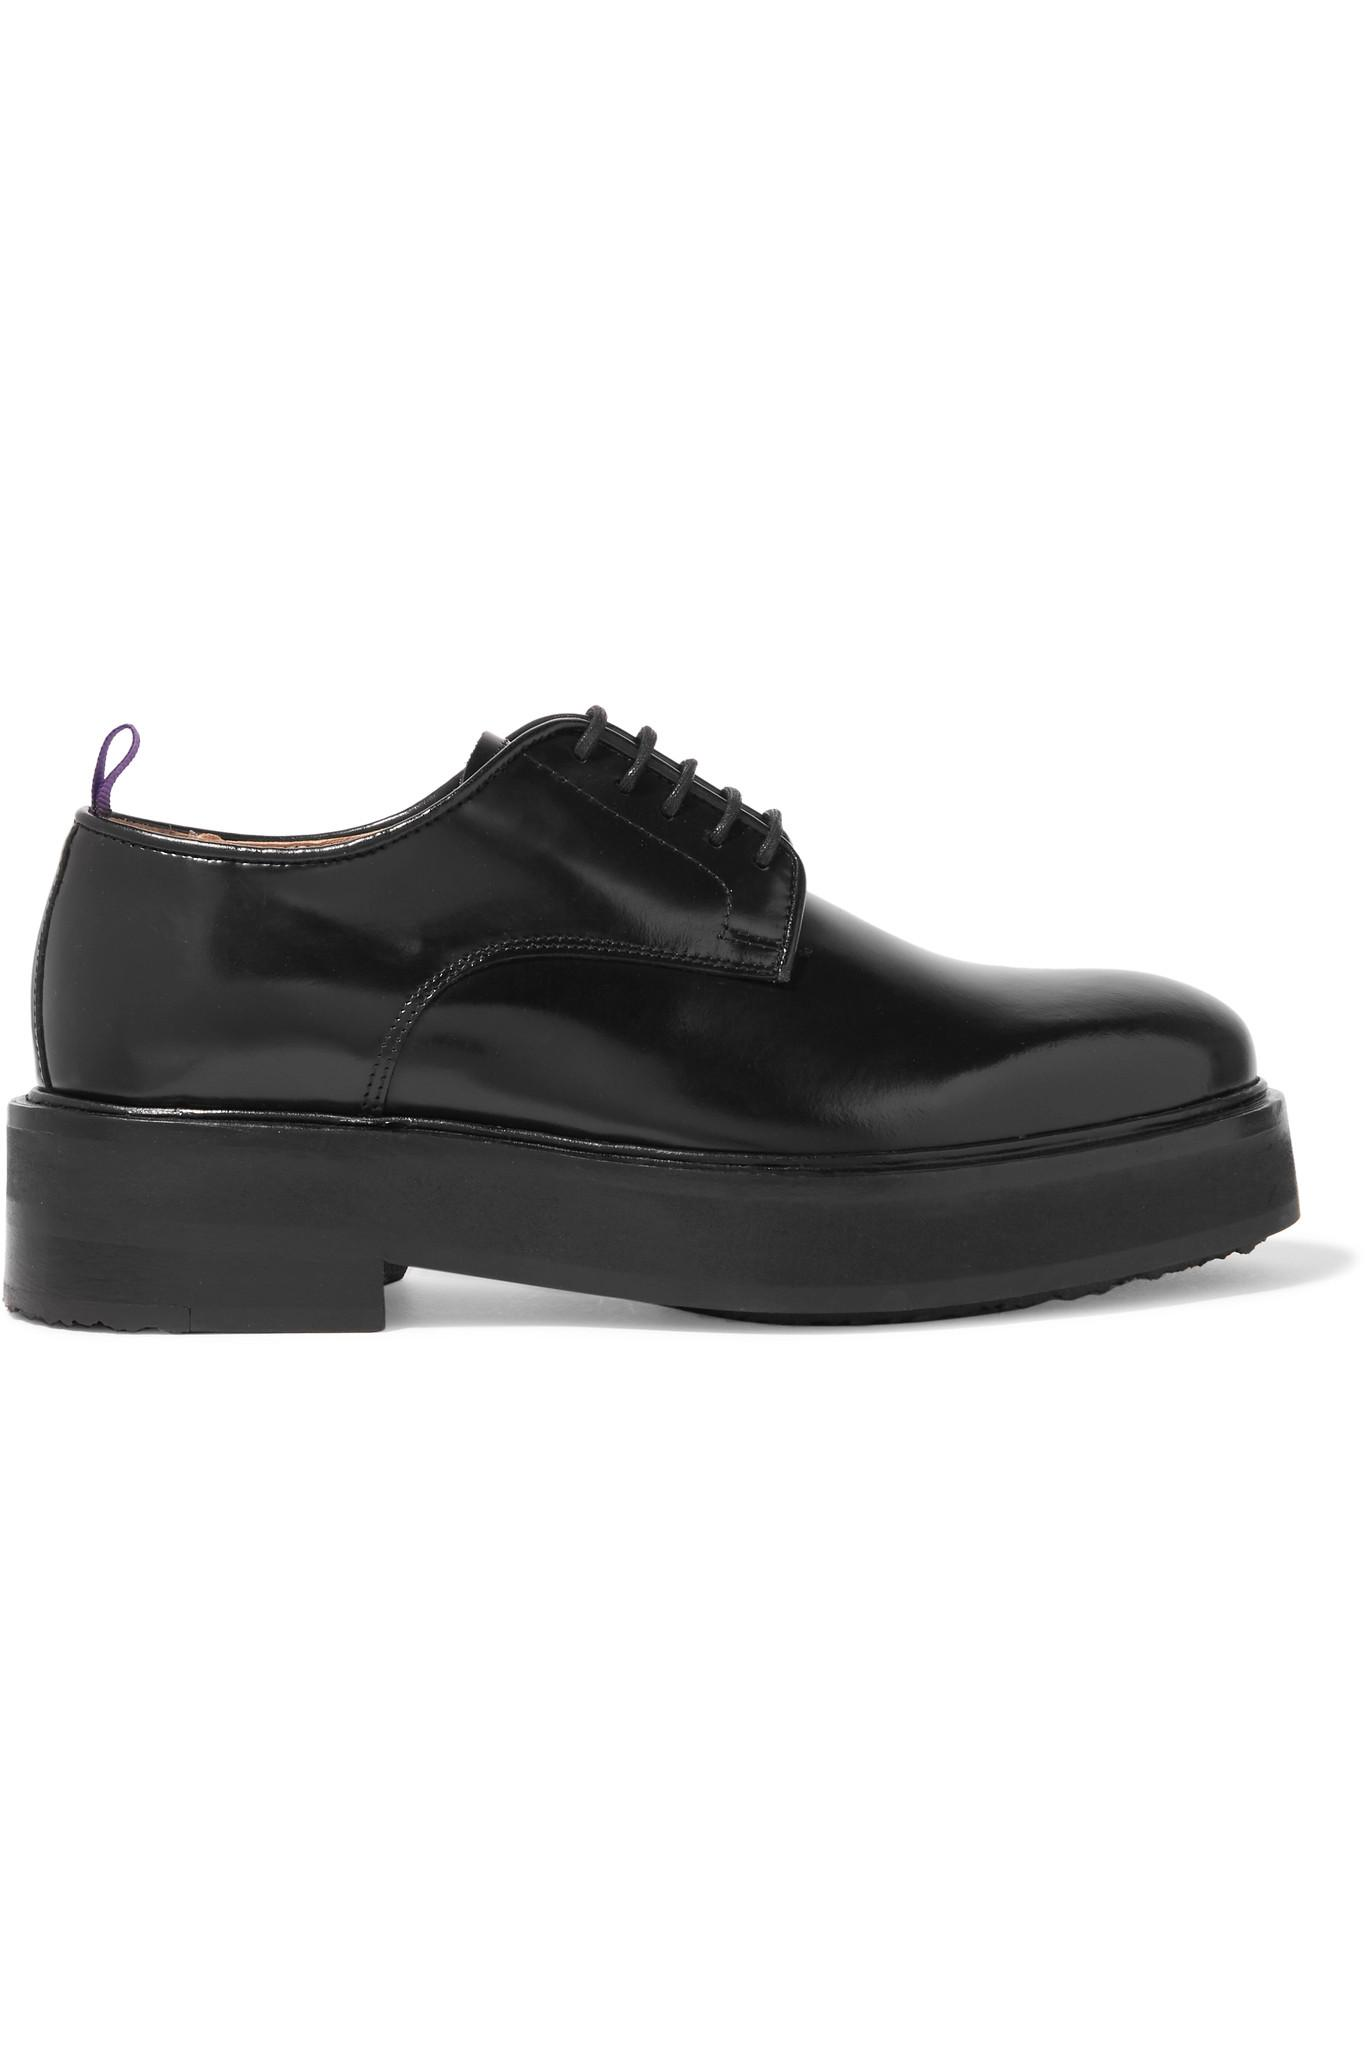 a91b817530f Lyst - Eytys Kingston Glossed-leather Platform Brogues in Black